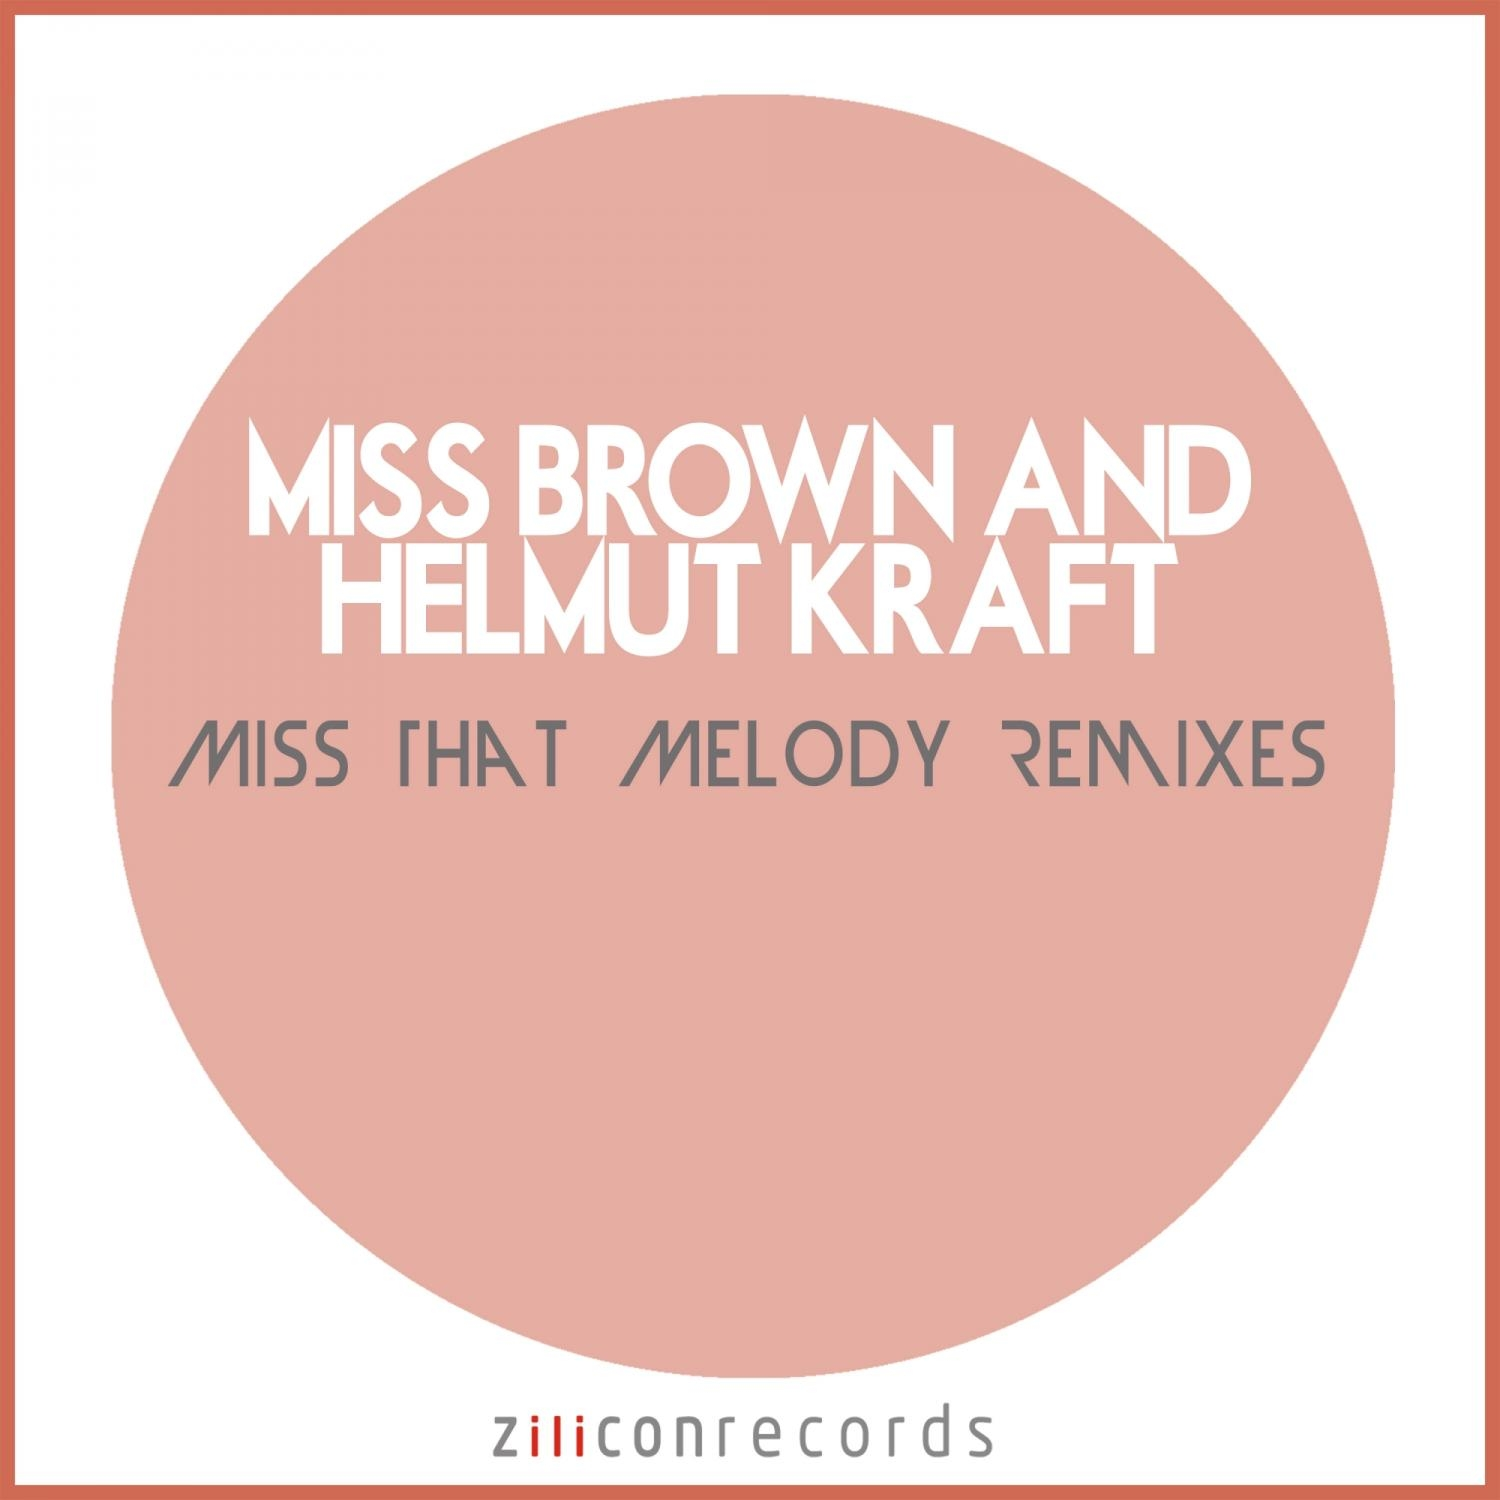 Miss Brown, Helmut Kraft, Betty Ford, Oliver Meadow - Miss That Melody (Betty Ford & Oliver Meadow Remix) (Betty Ford & Oliver Meadow Remix)